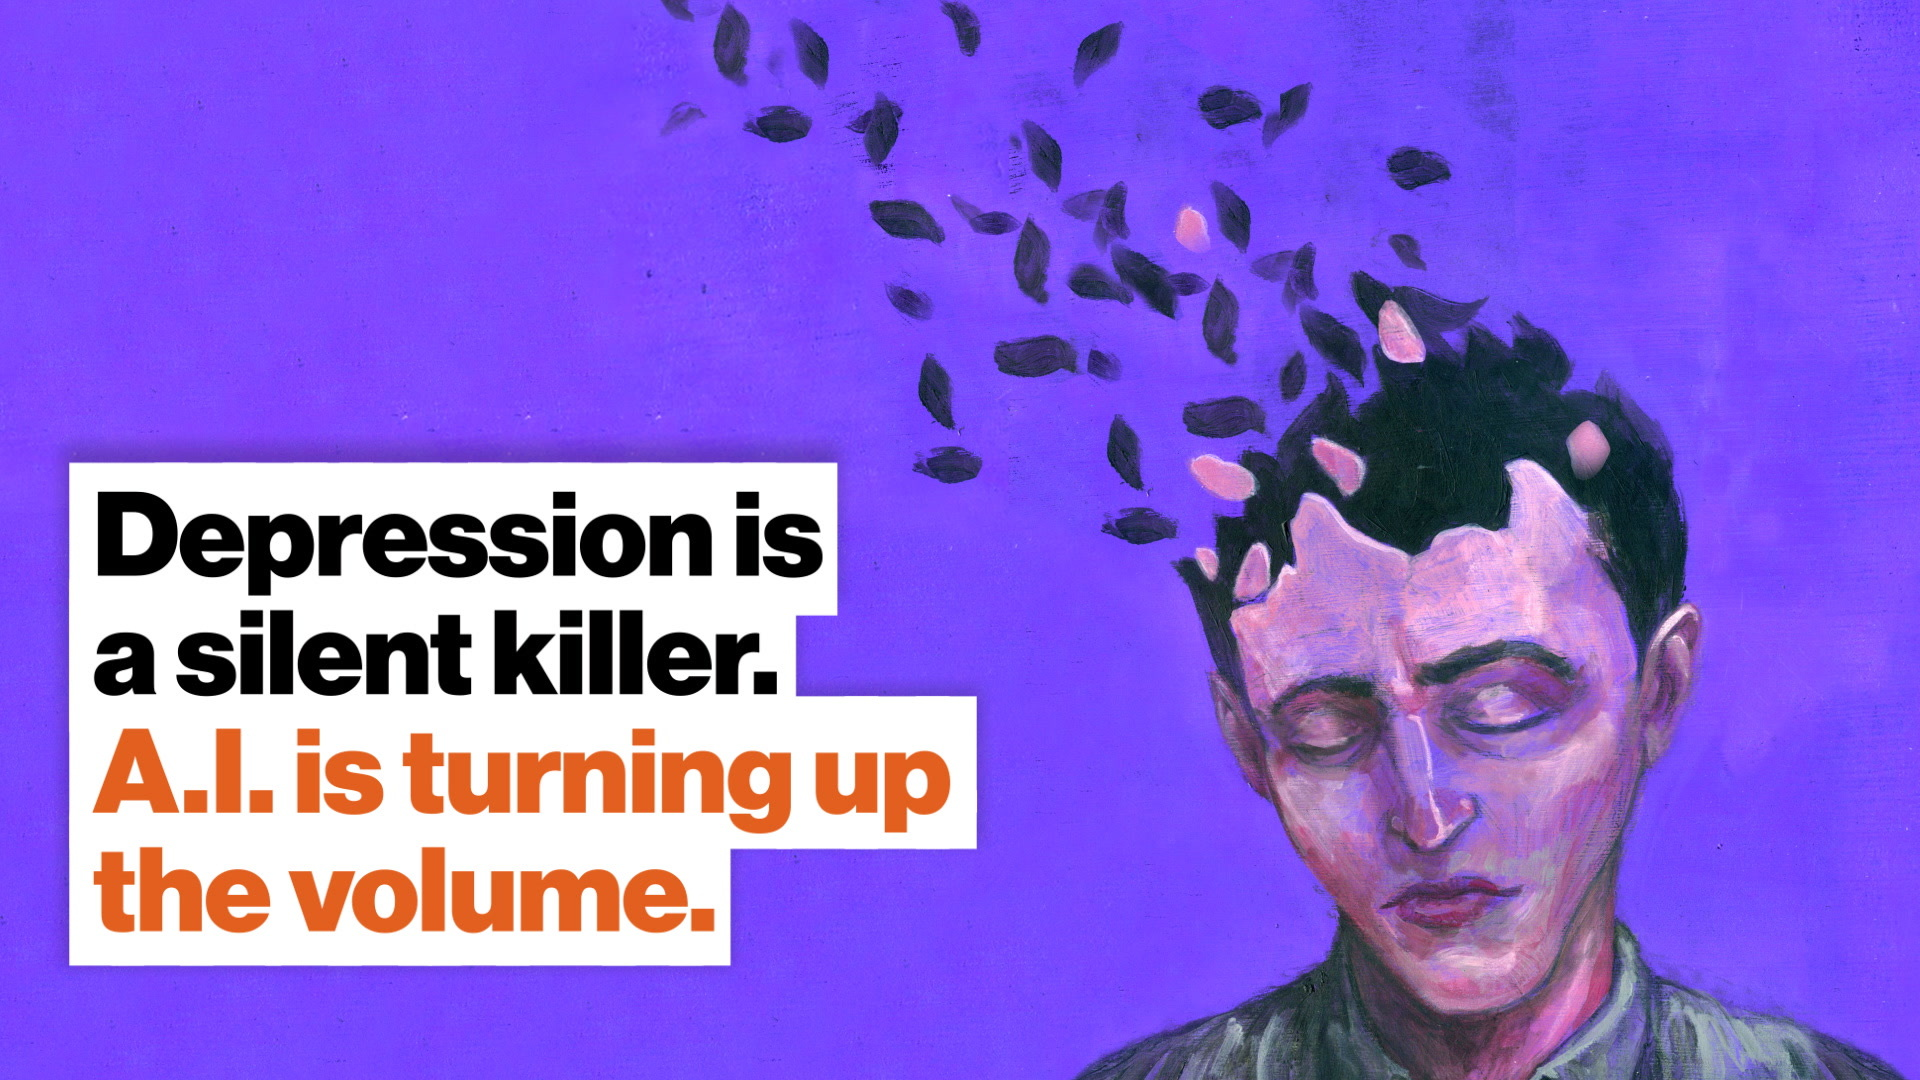 Depression is a silent killer. A.I. is turning up the volume.